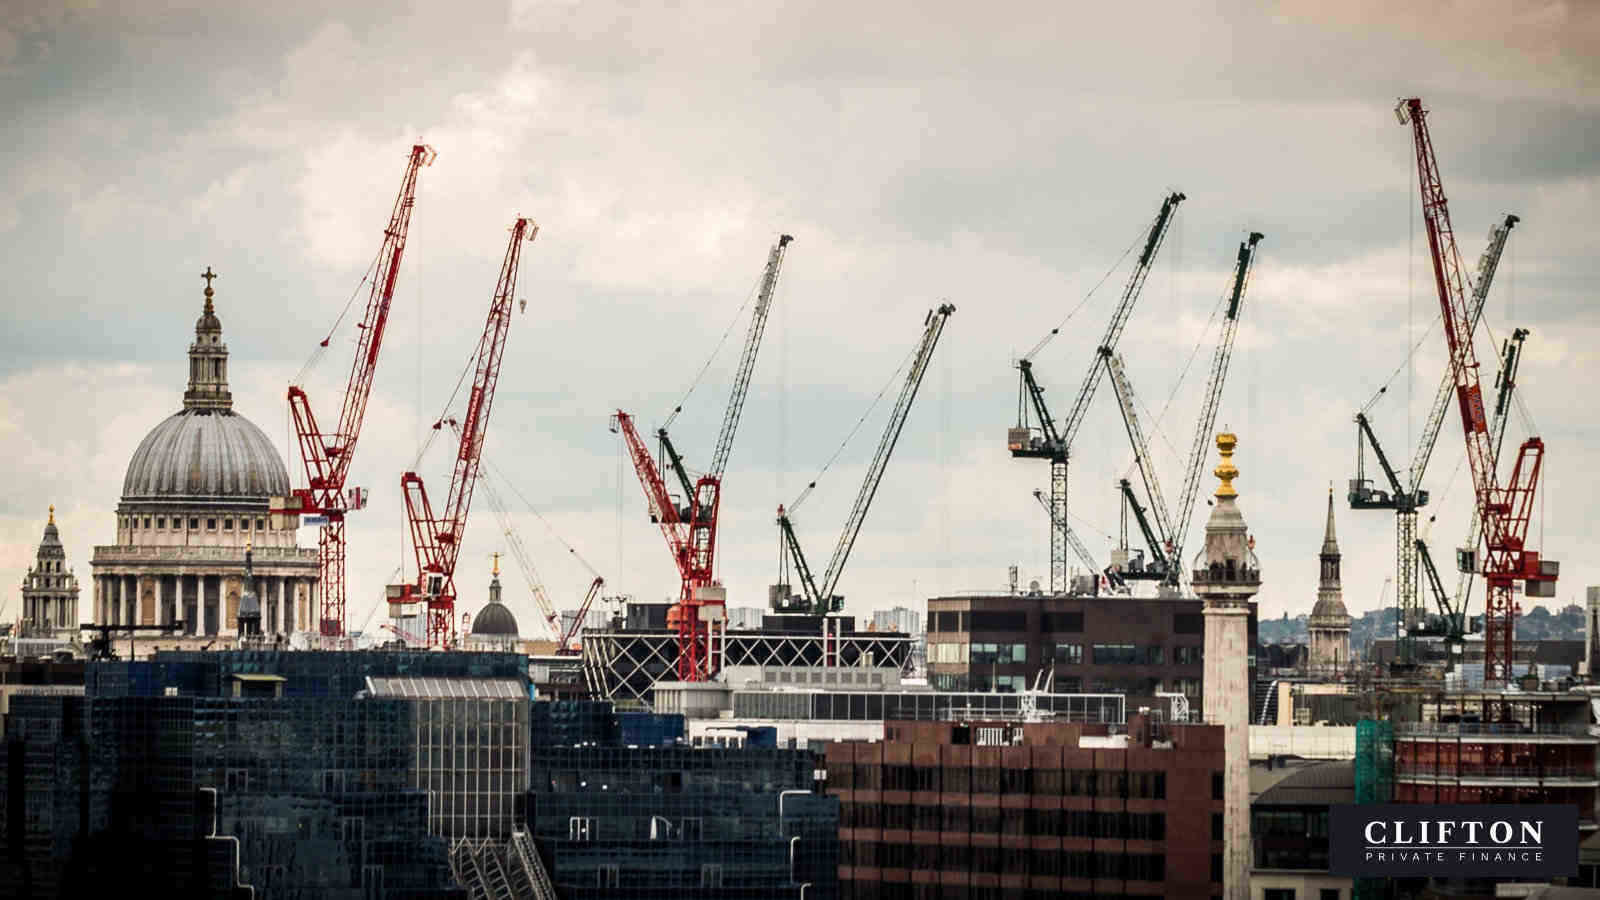 How To Get Development Finance To Develop Property In London